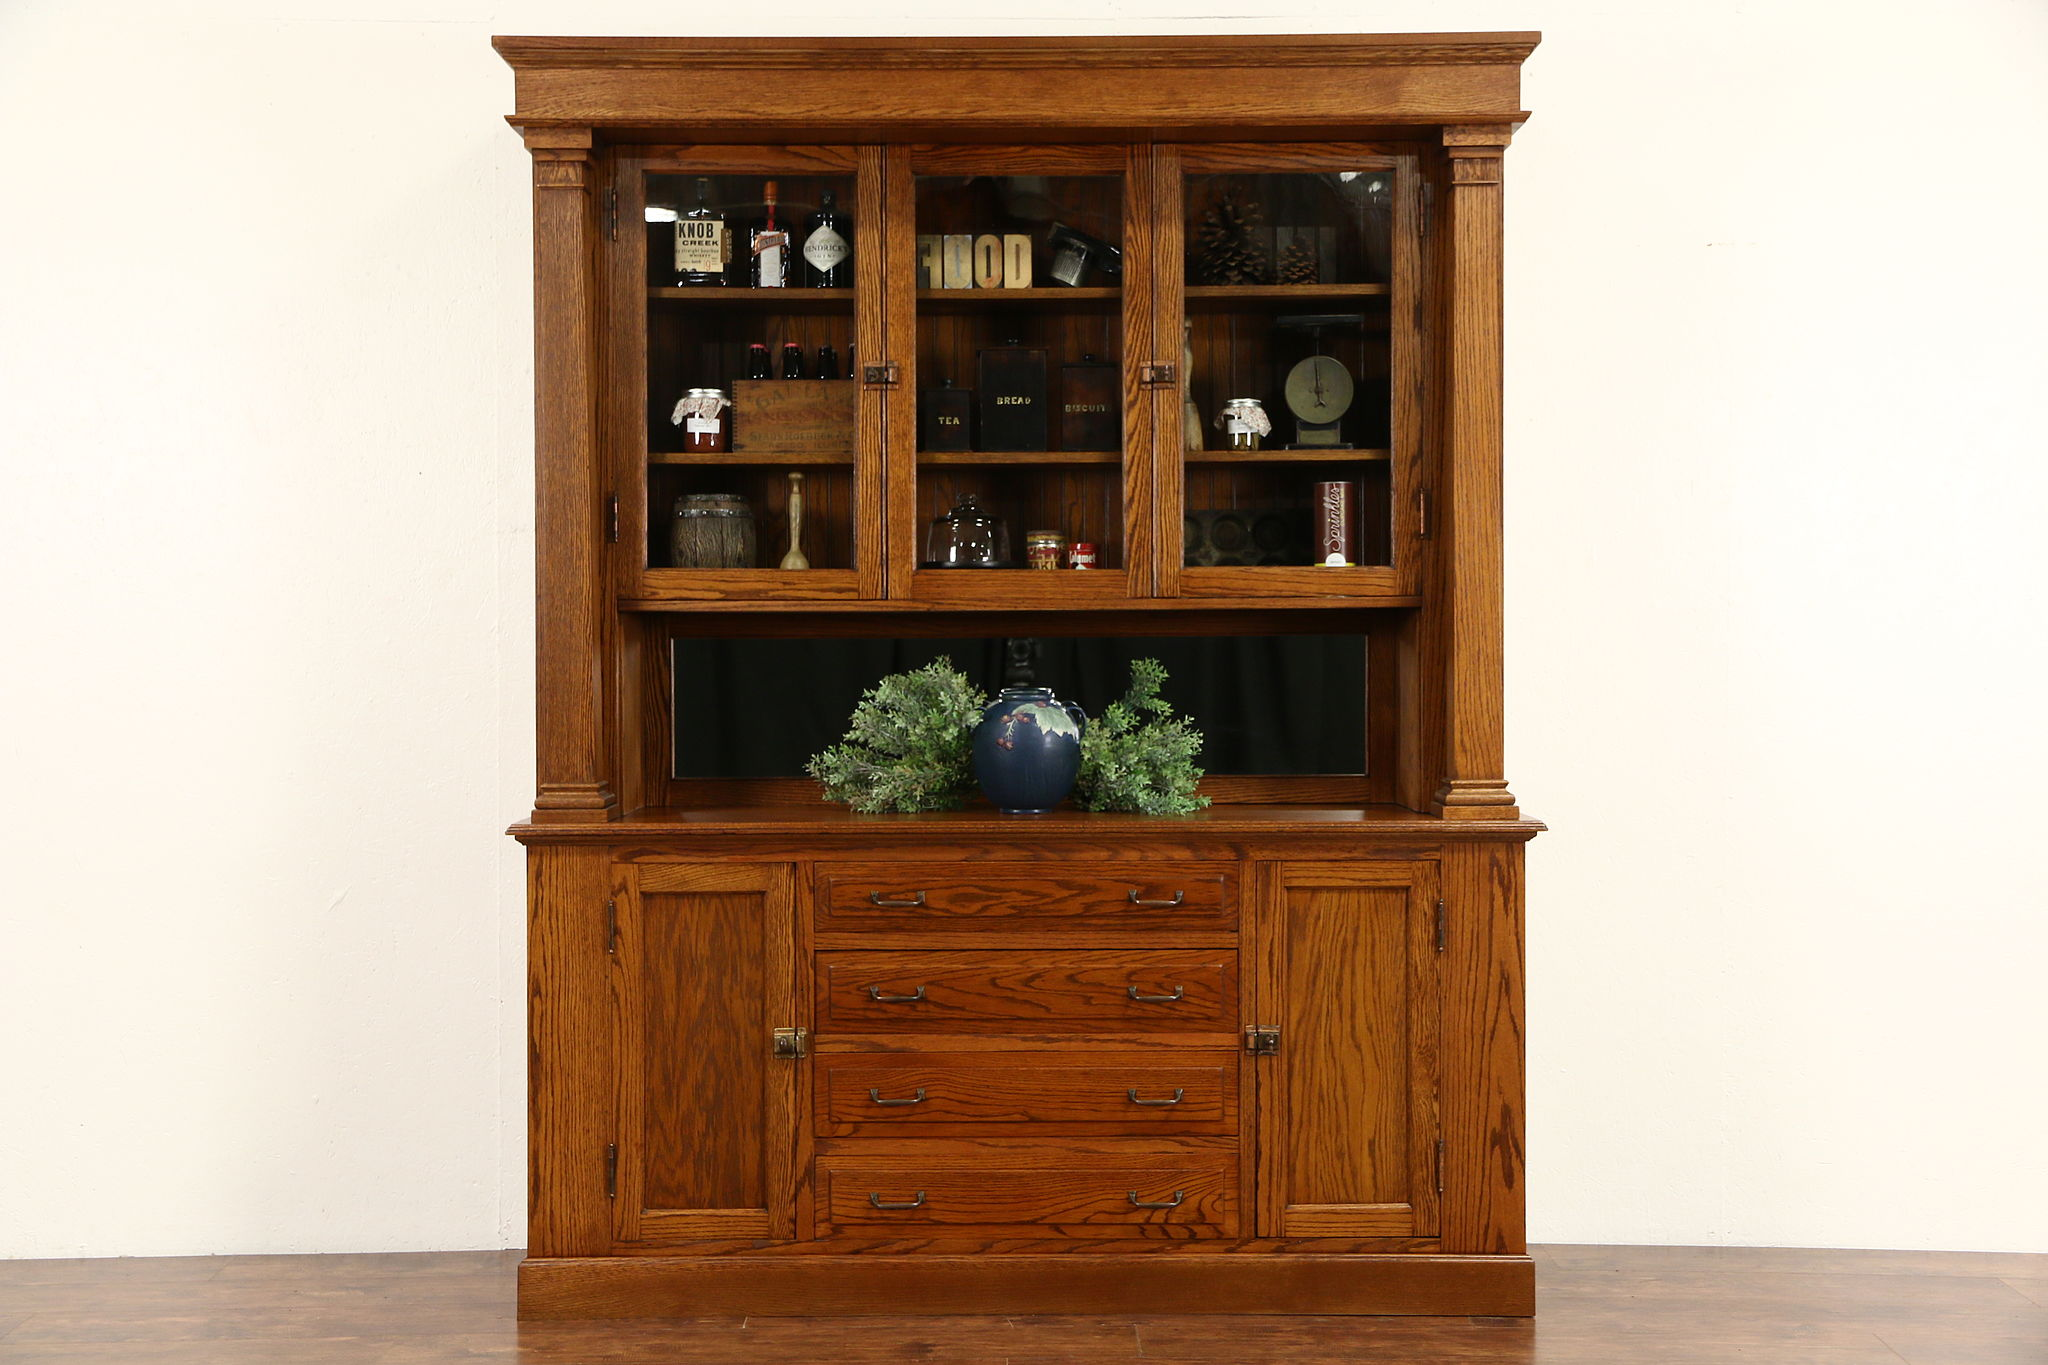 SOLD - Arts & Crafts Mission Oak 1910 Antique Back Bar, Sideboard ...